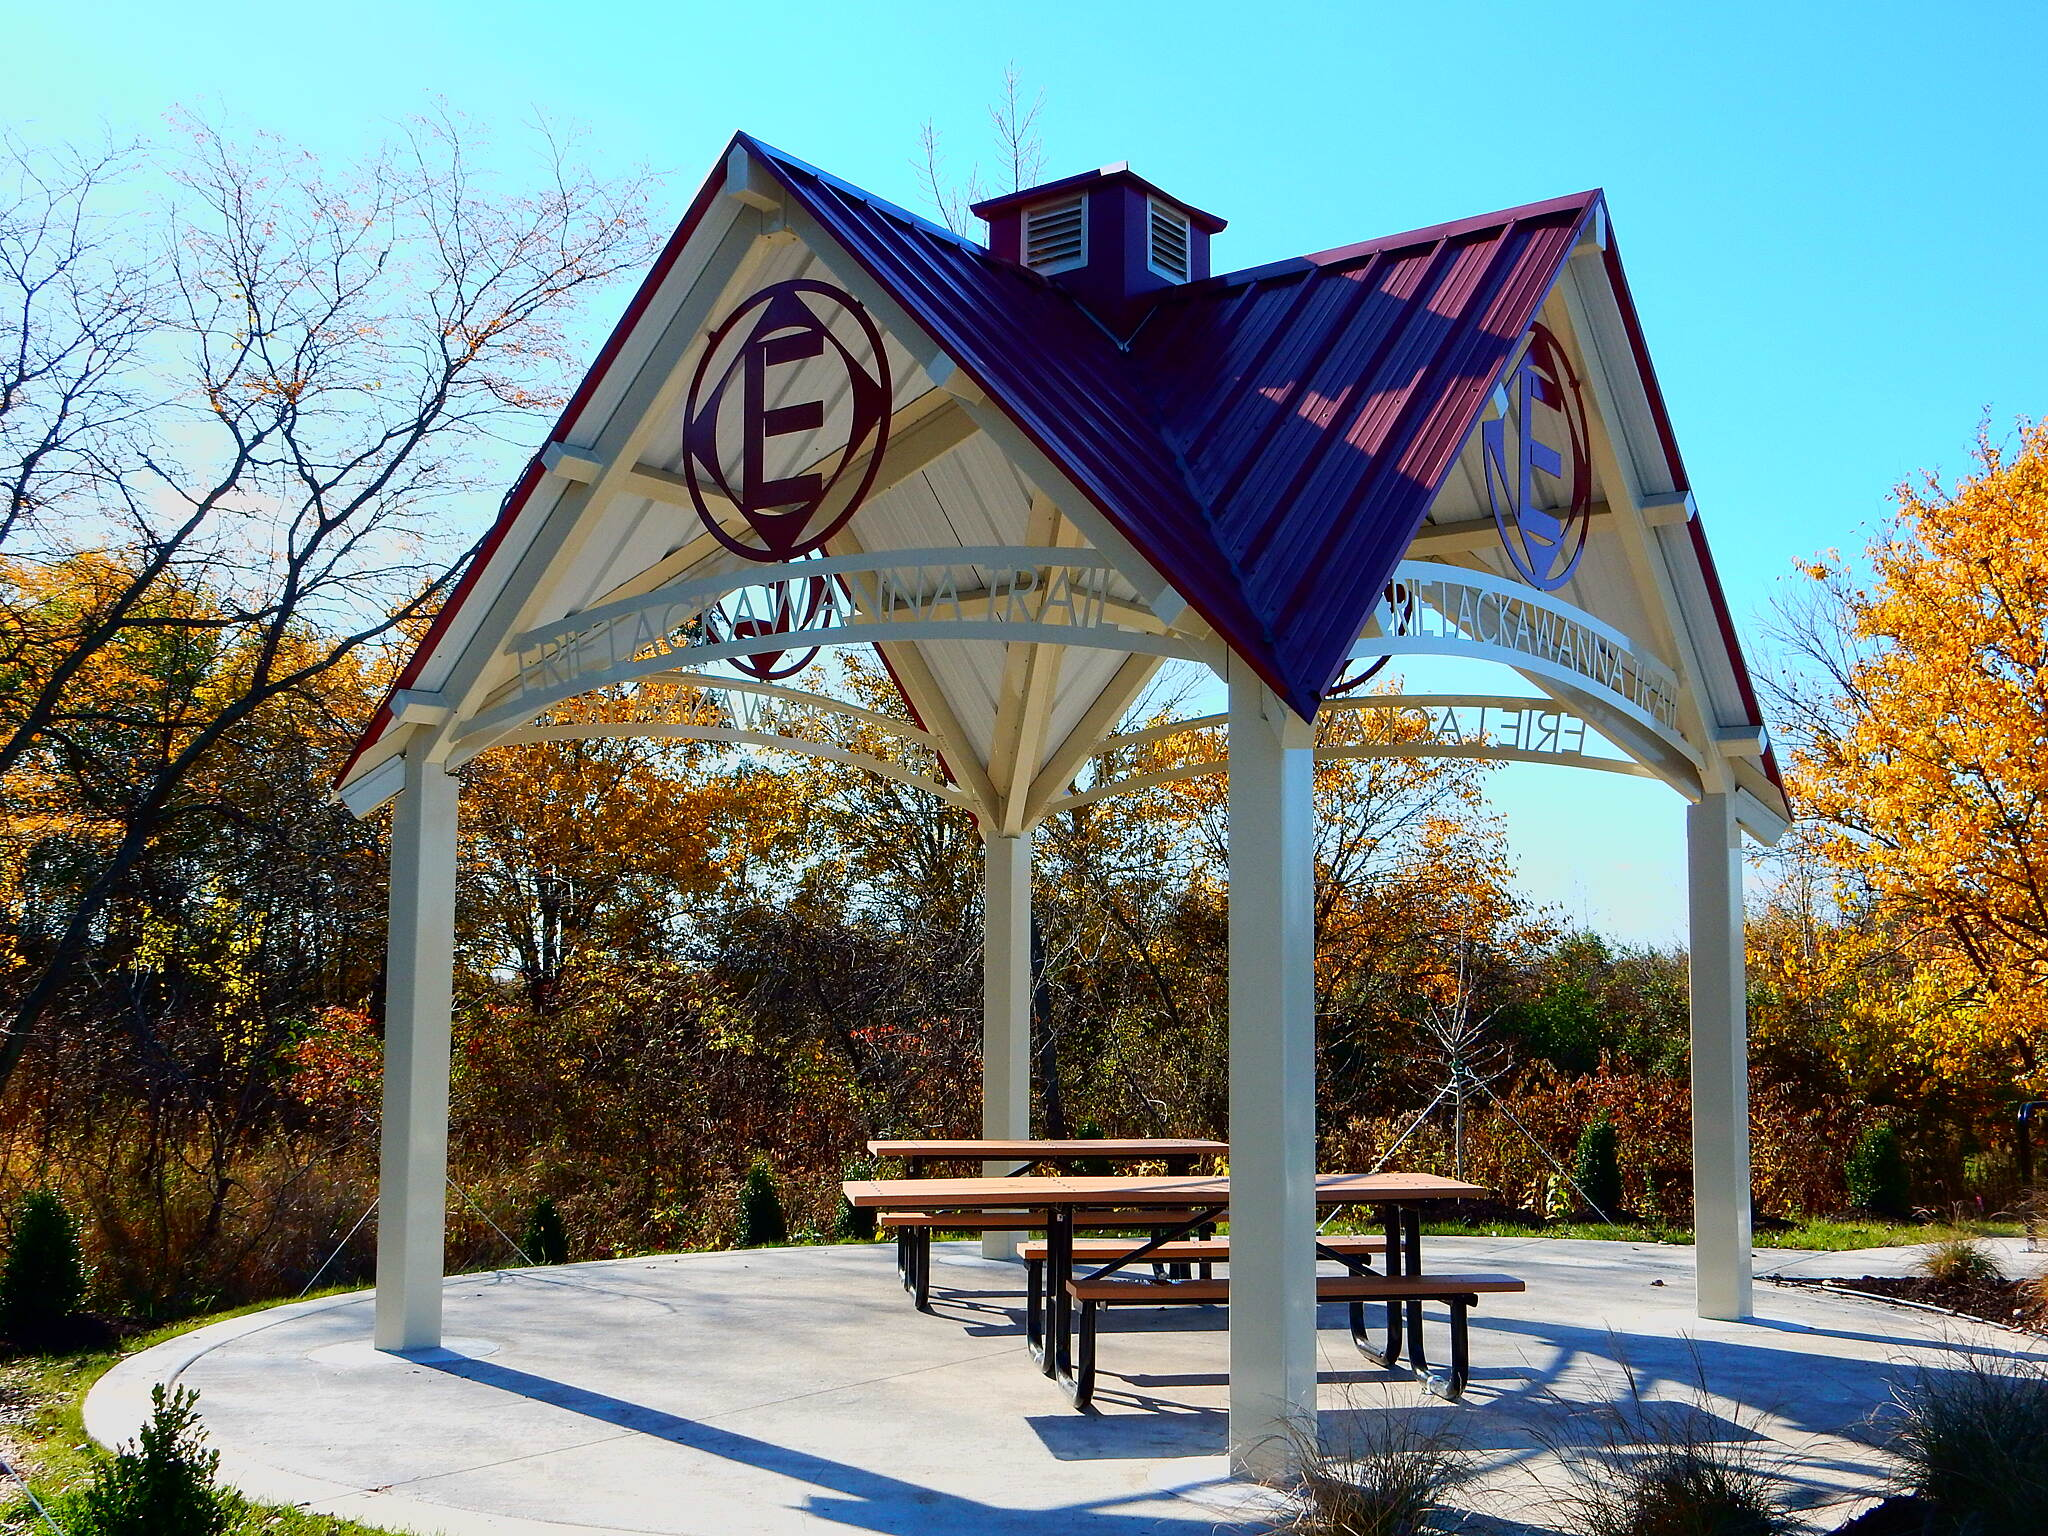 Erie Lackawanna Trail New Trail Head This is the new shelter at the just completed trailhead at 93rd and Chase, near Crown Point, taken 11-4-16.